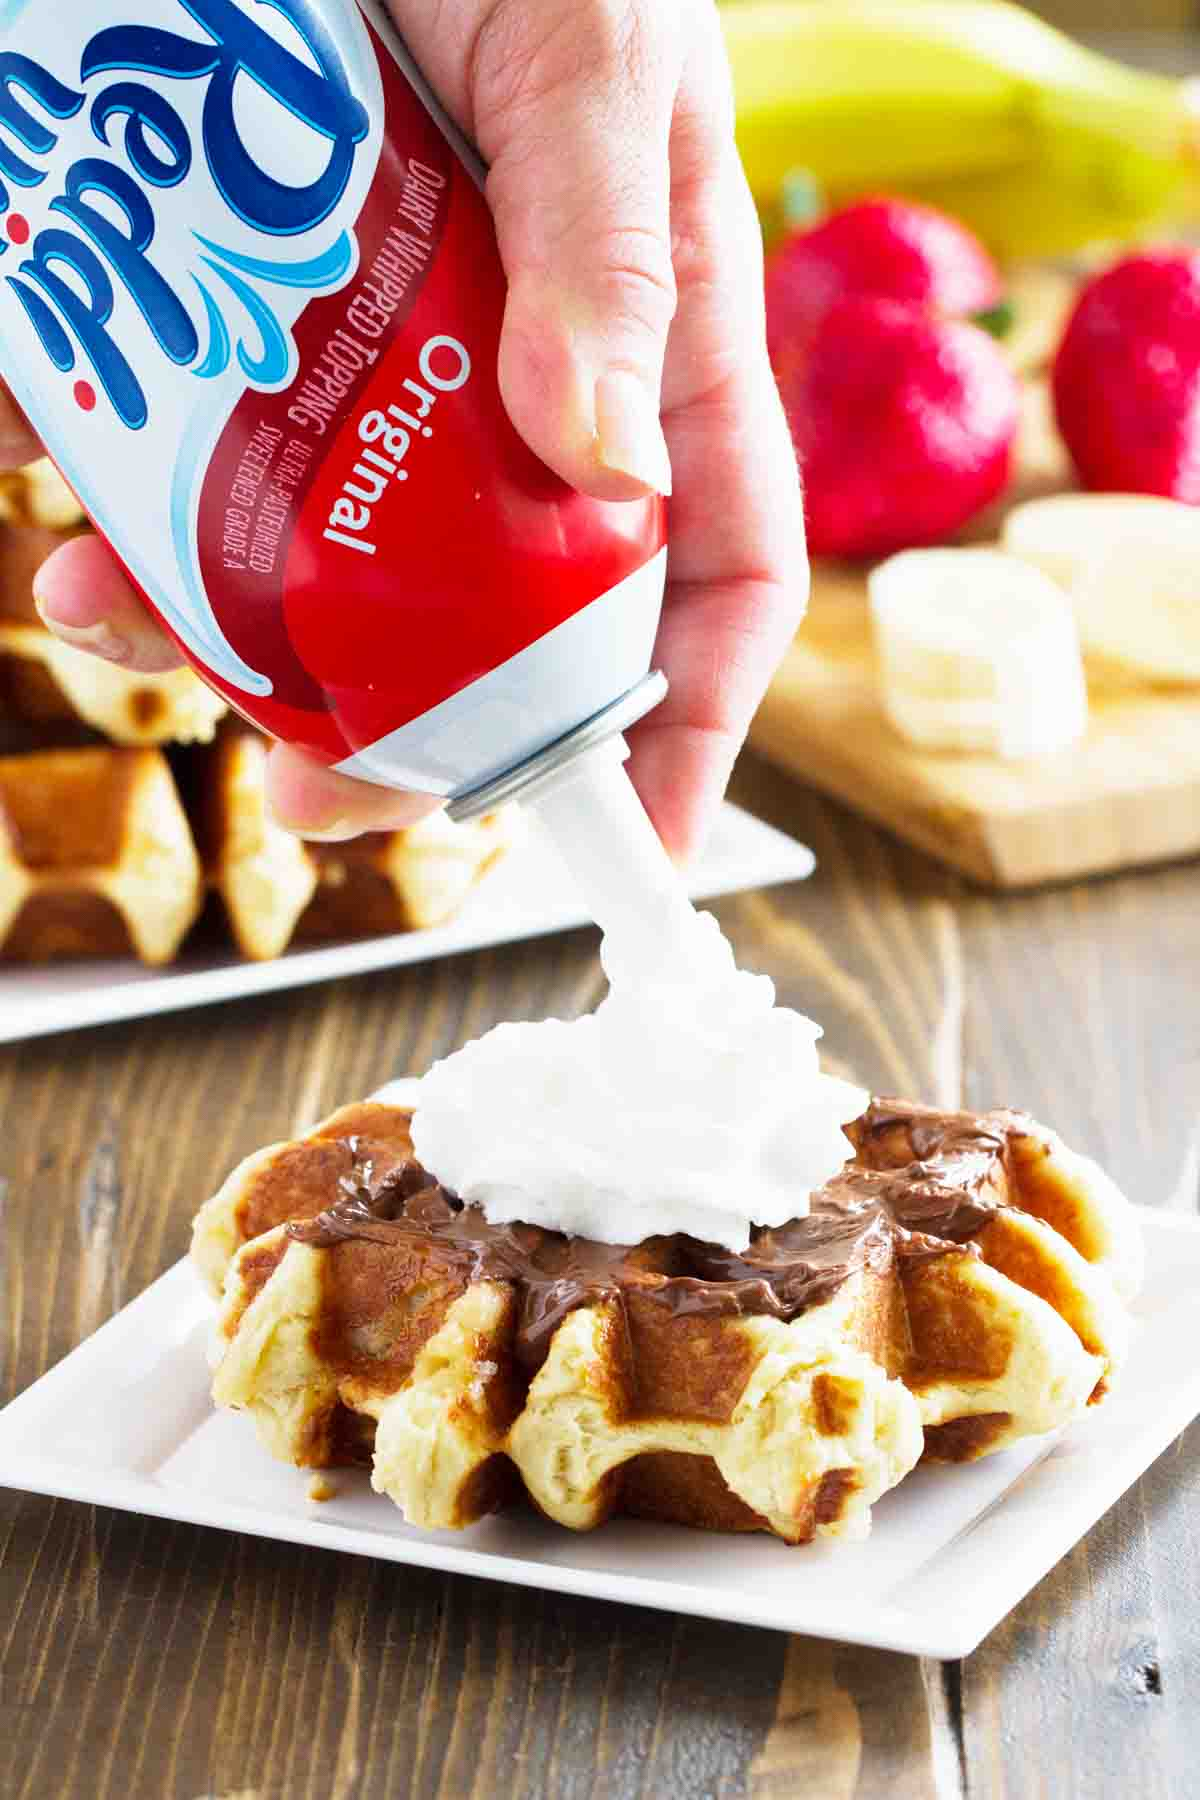 putting whipped topping on a liege waffle